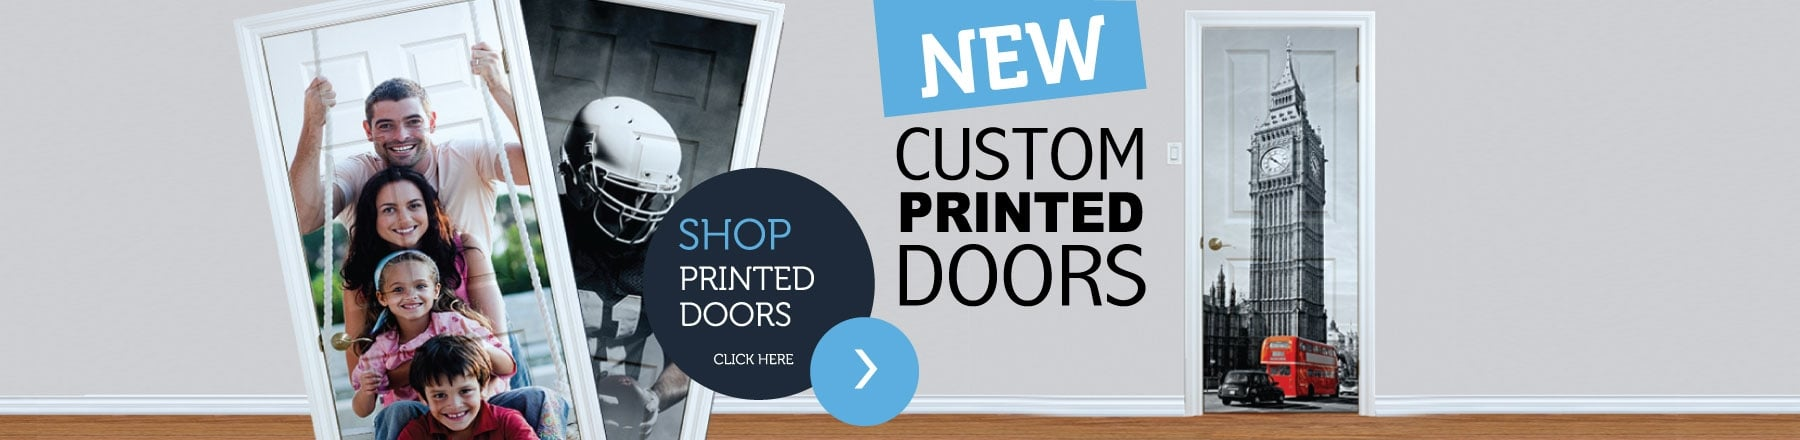 Shop Printed Doors